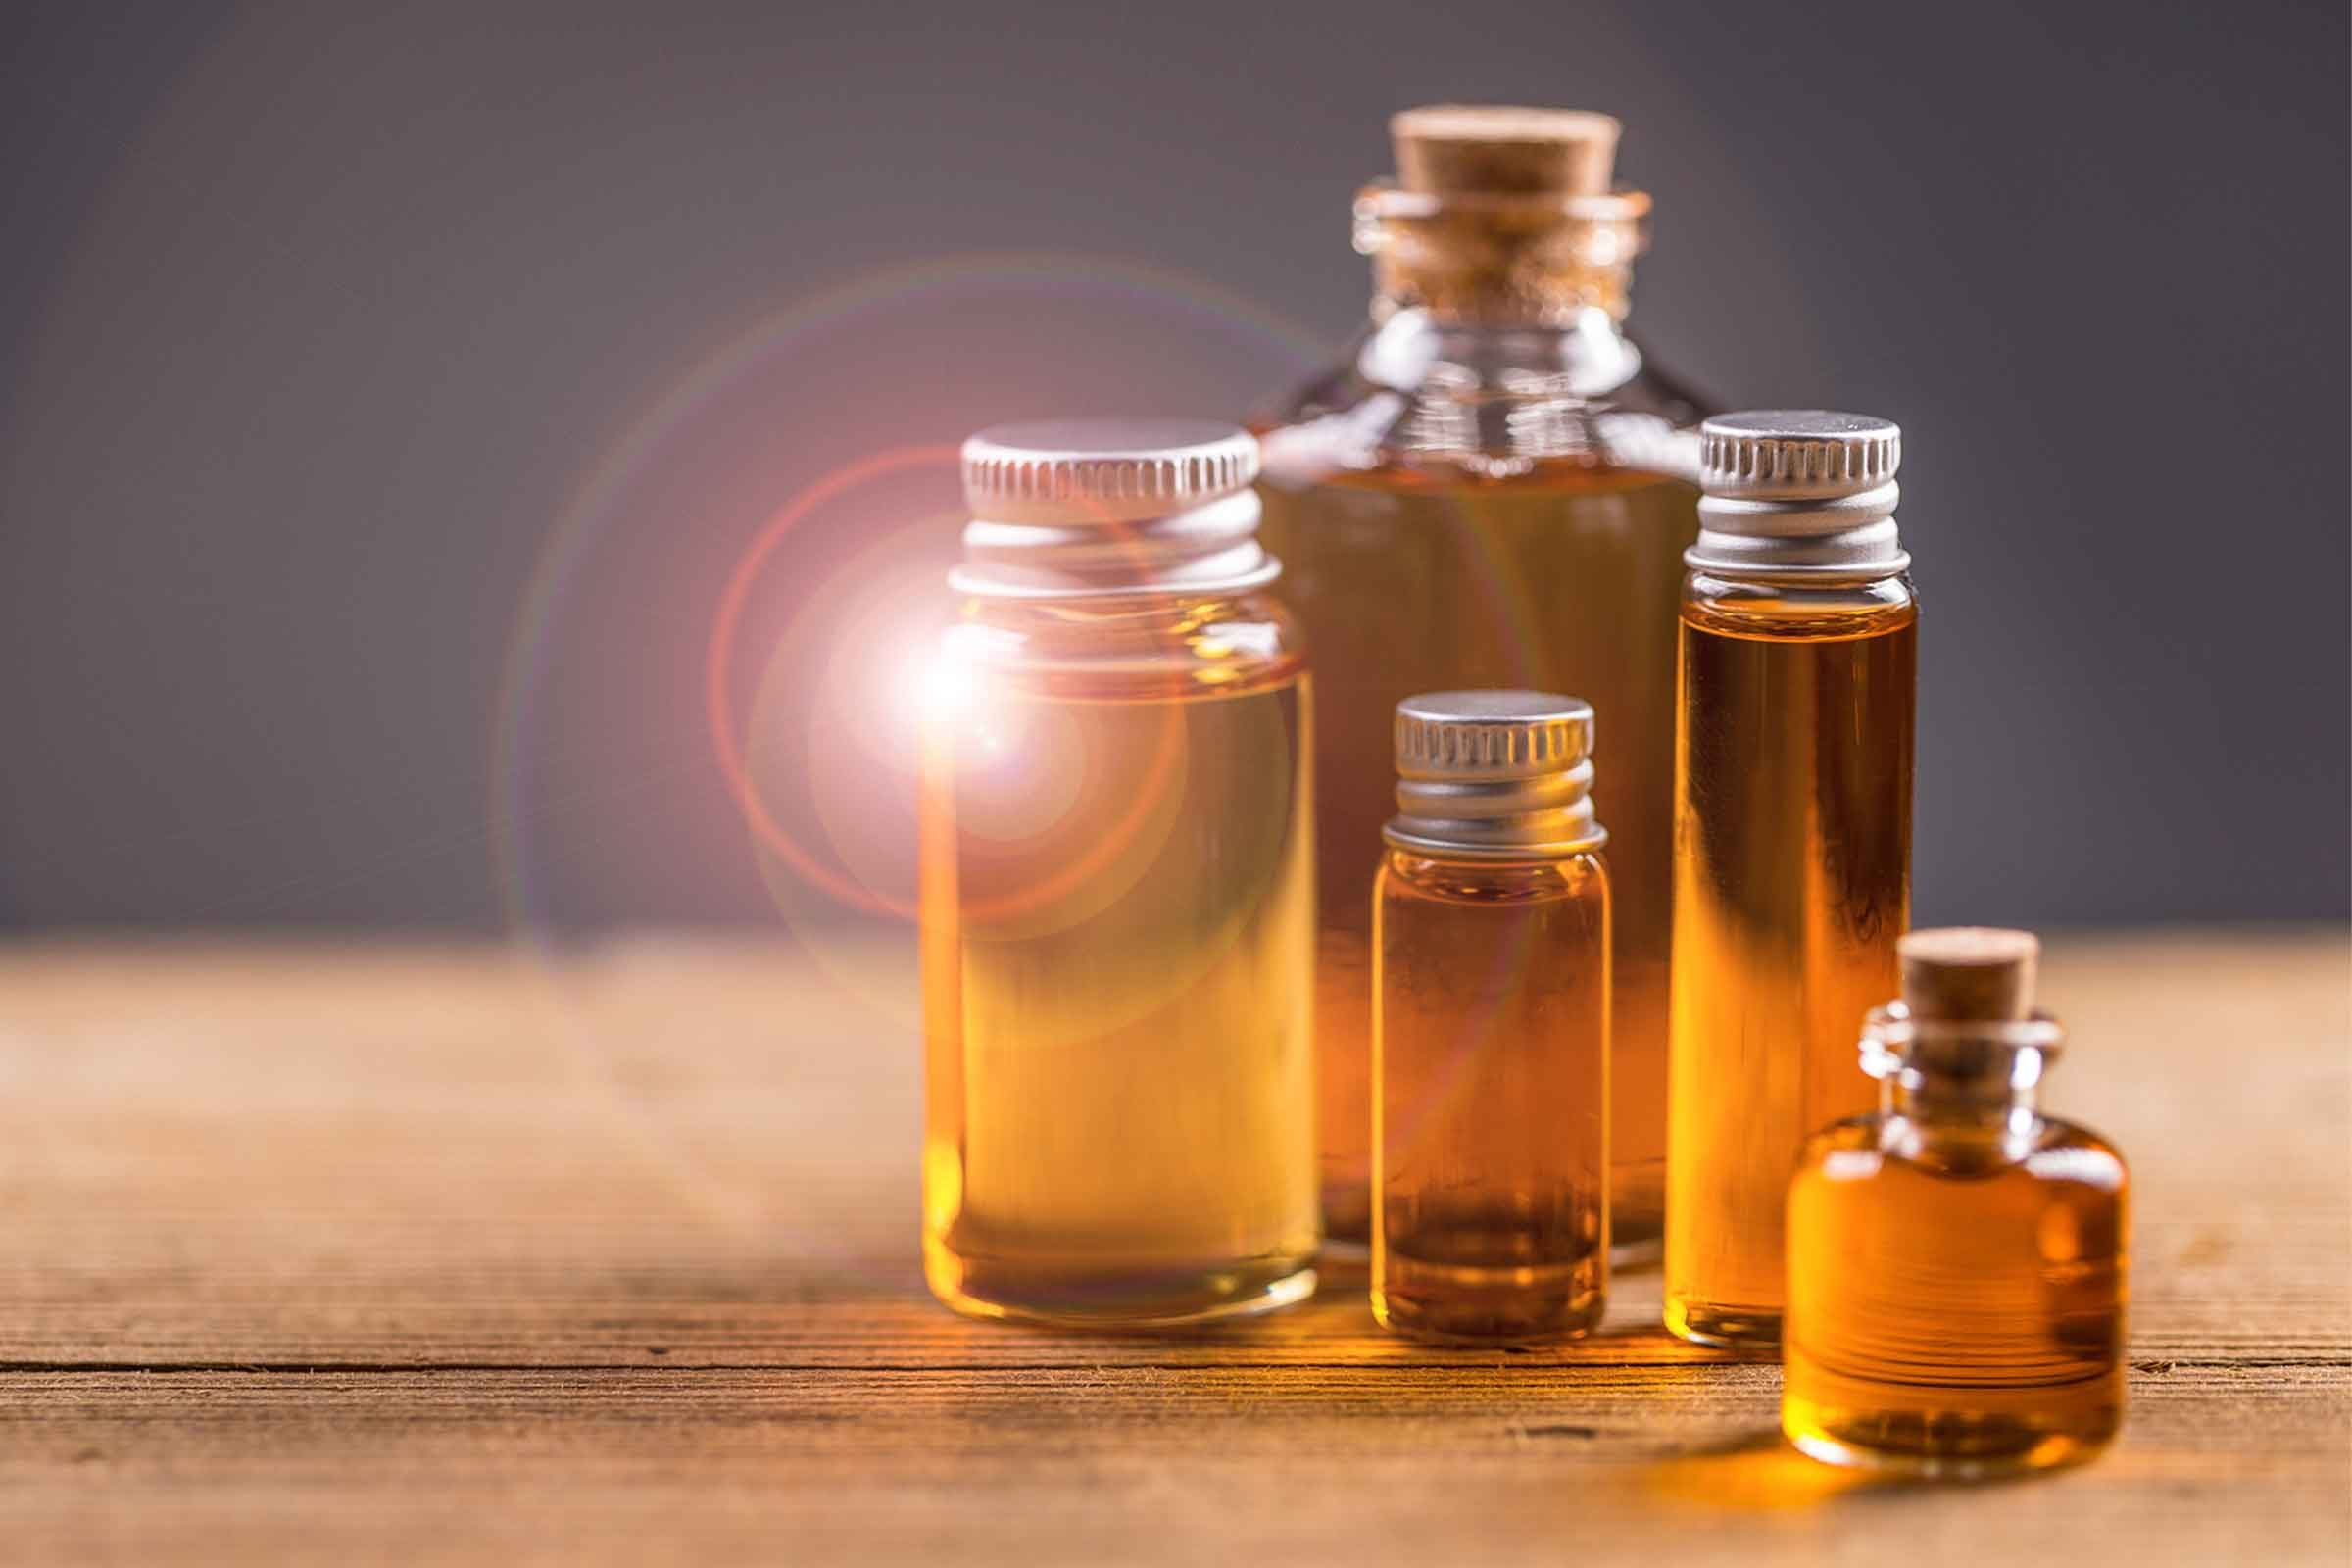 vials and jars of essential oils